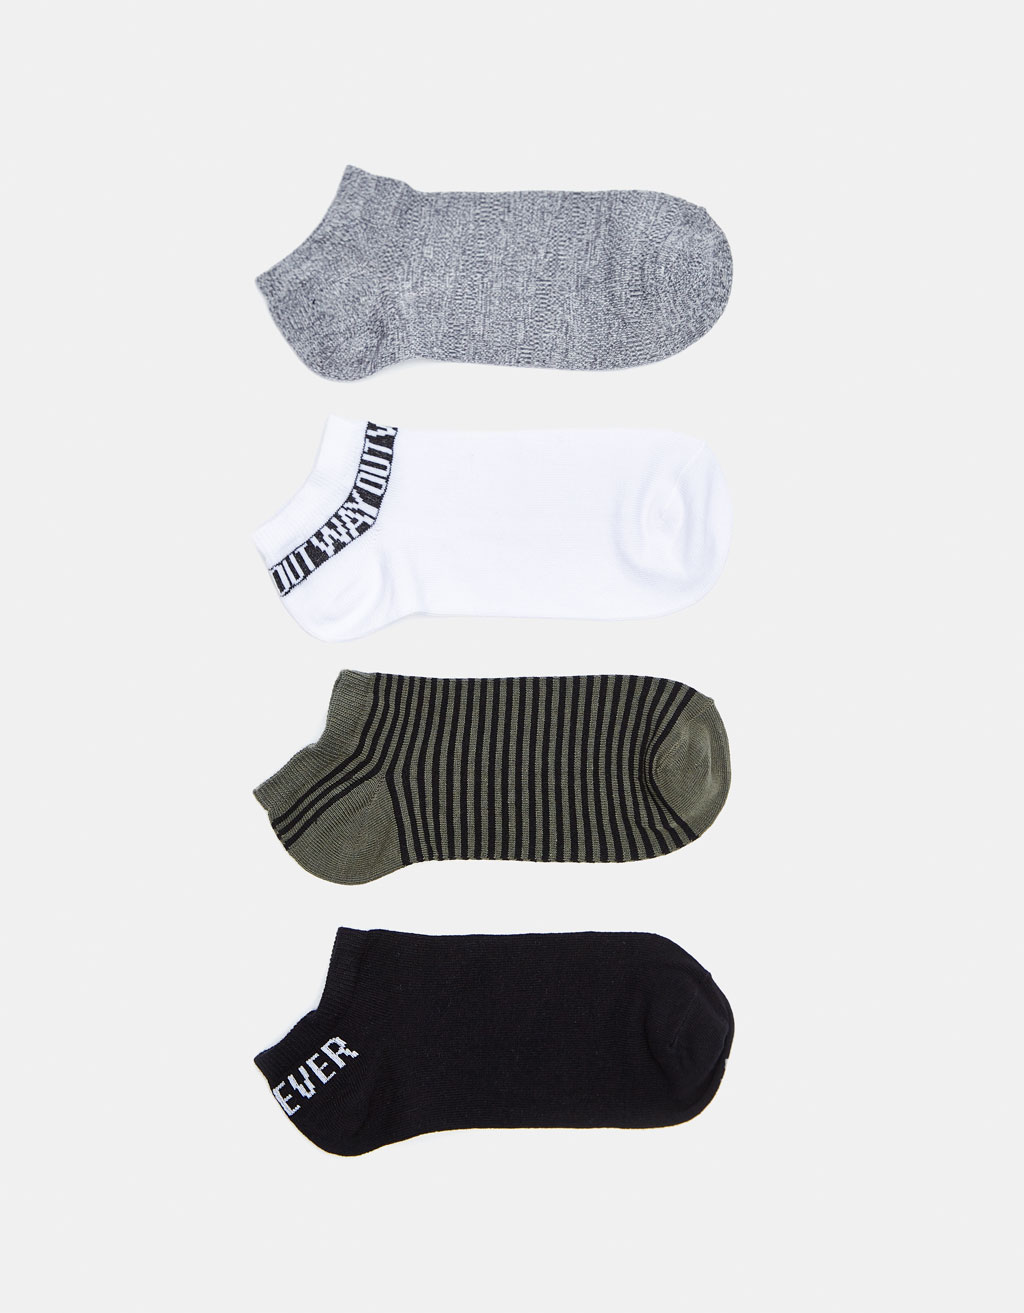 Pack of Join Life ankle socks